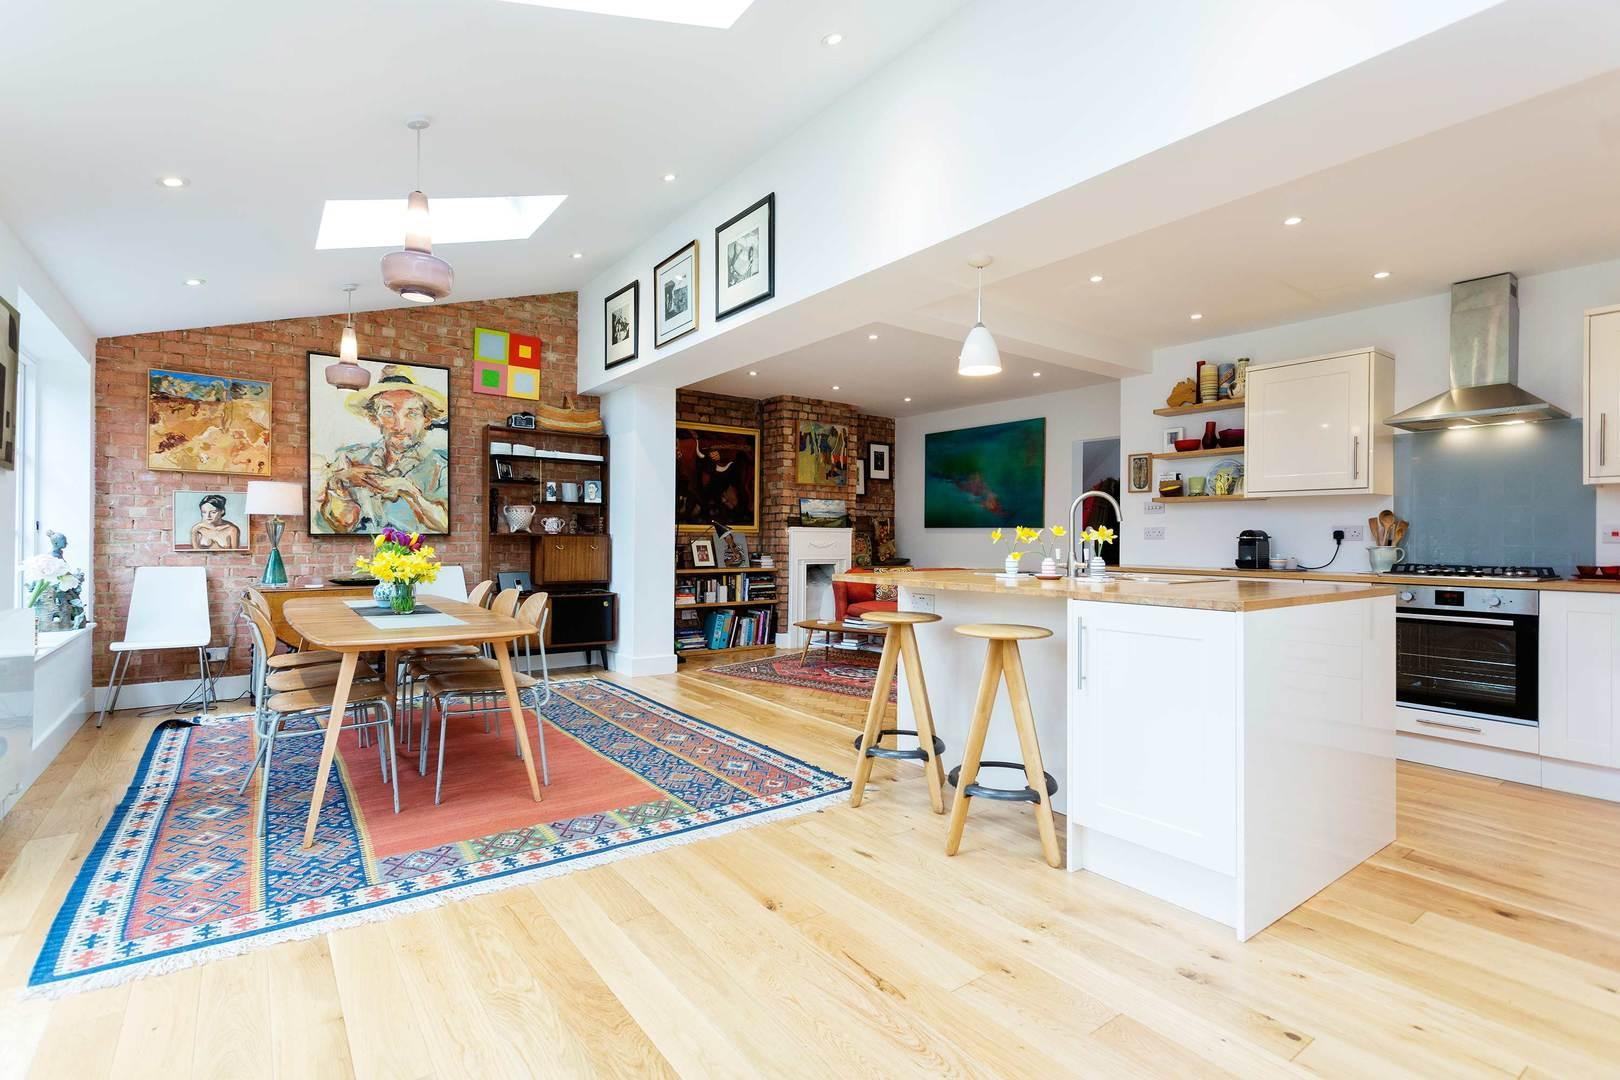 Property Image 1 - Charming Acton Family Home with Great Artwork